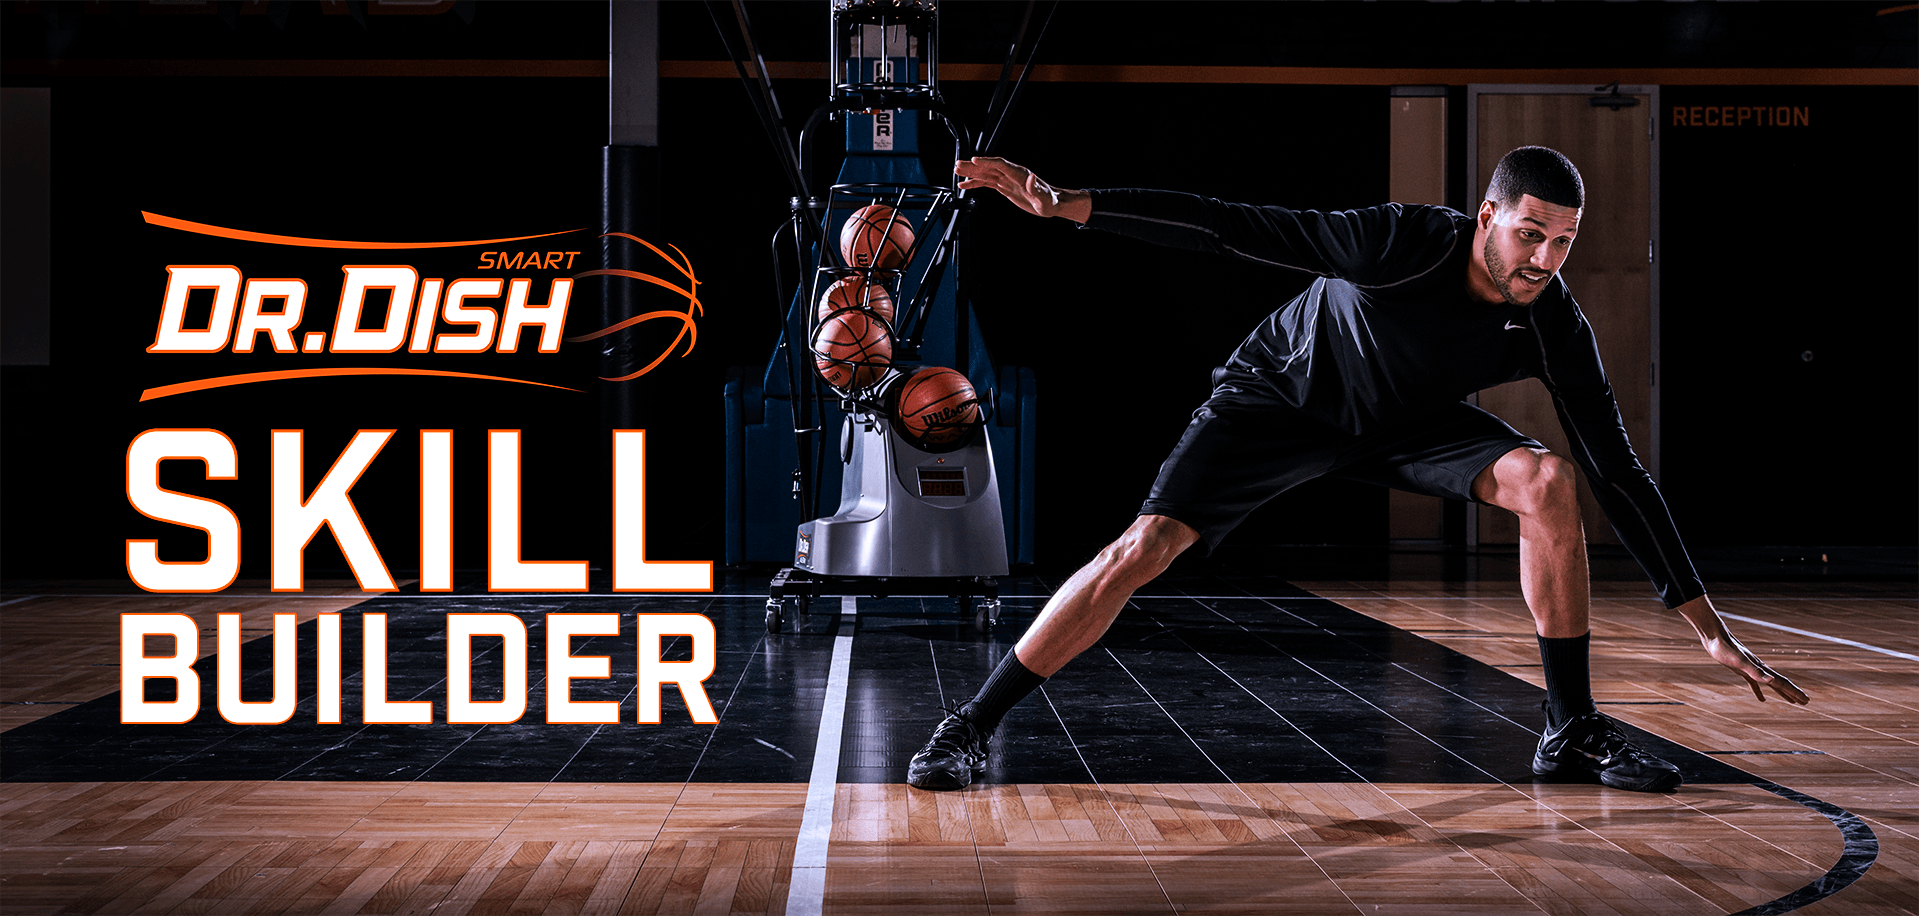 Dr. Dish Basketball Unveils Skill Builder